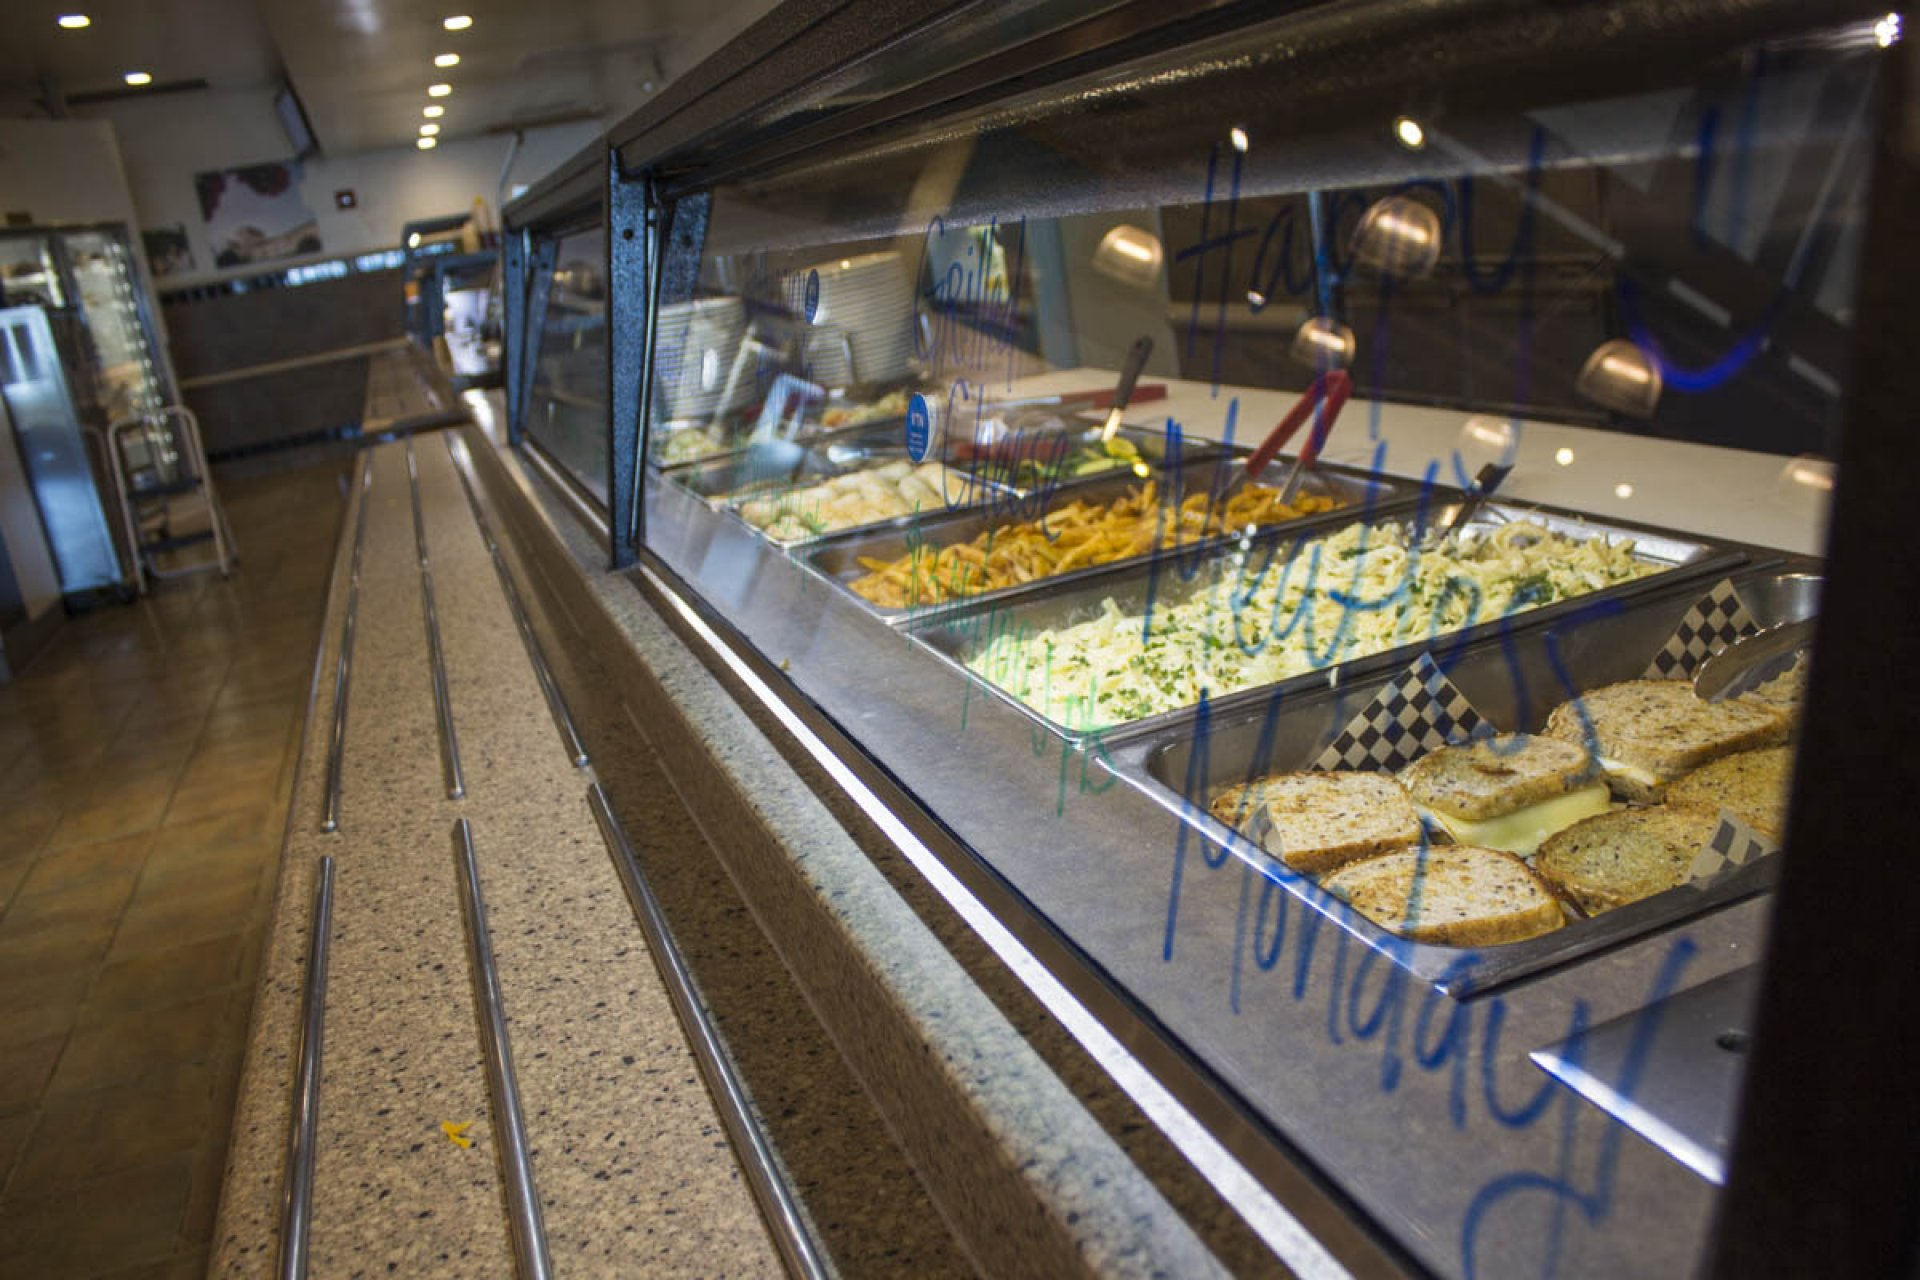 Meatless monday food options in the hot food counter. Photo credit: Ahmed Al-Sakkaf